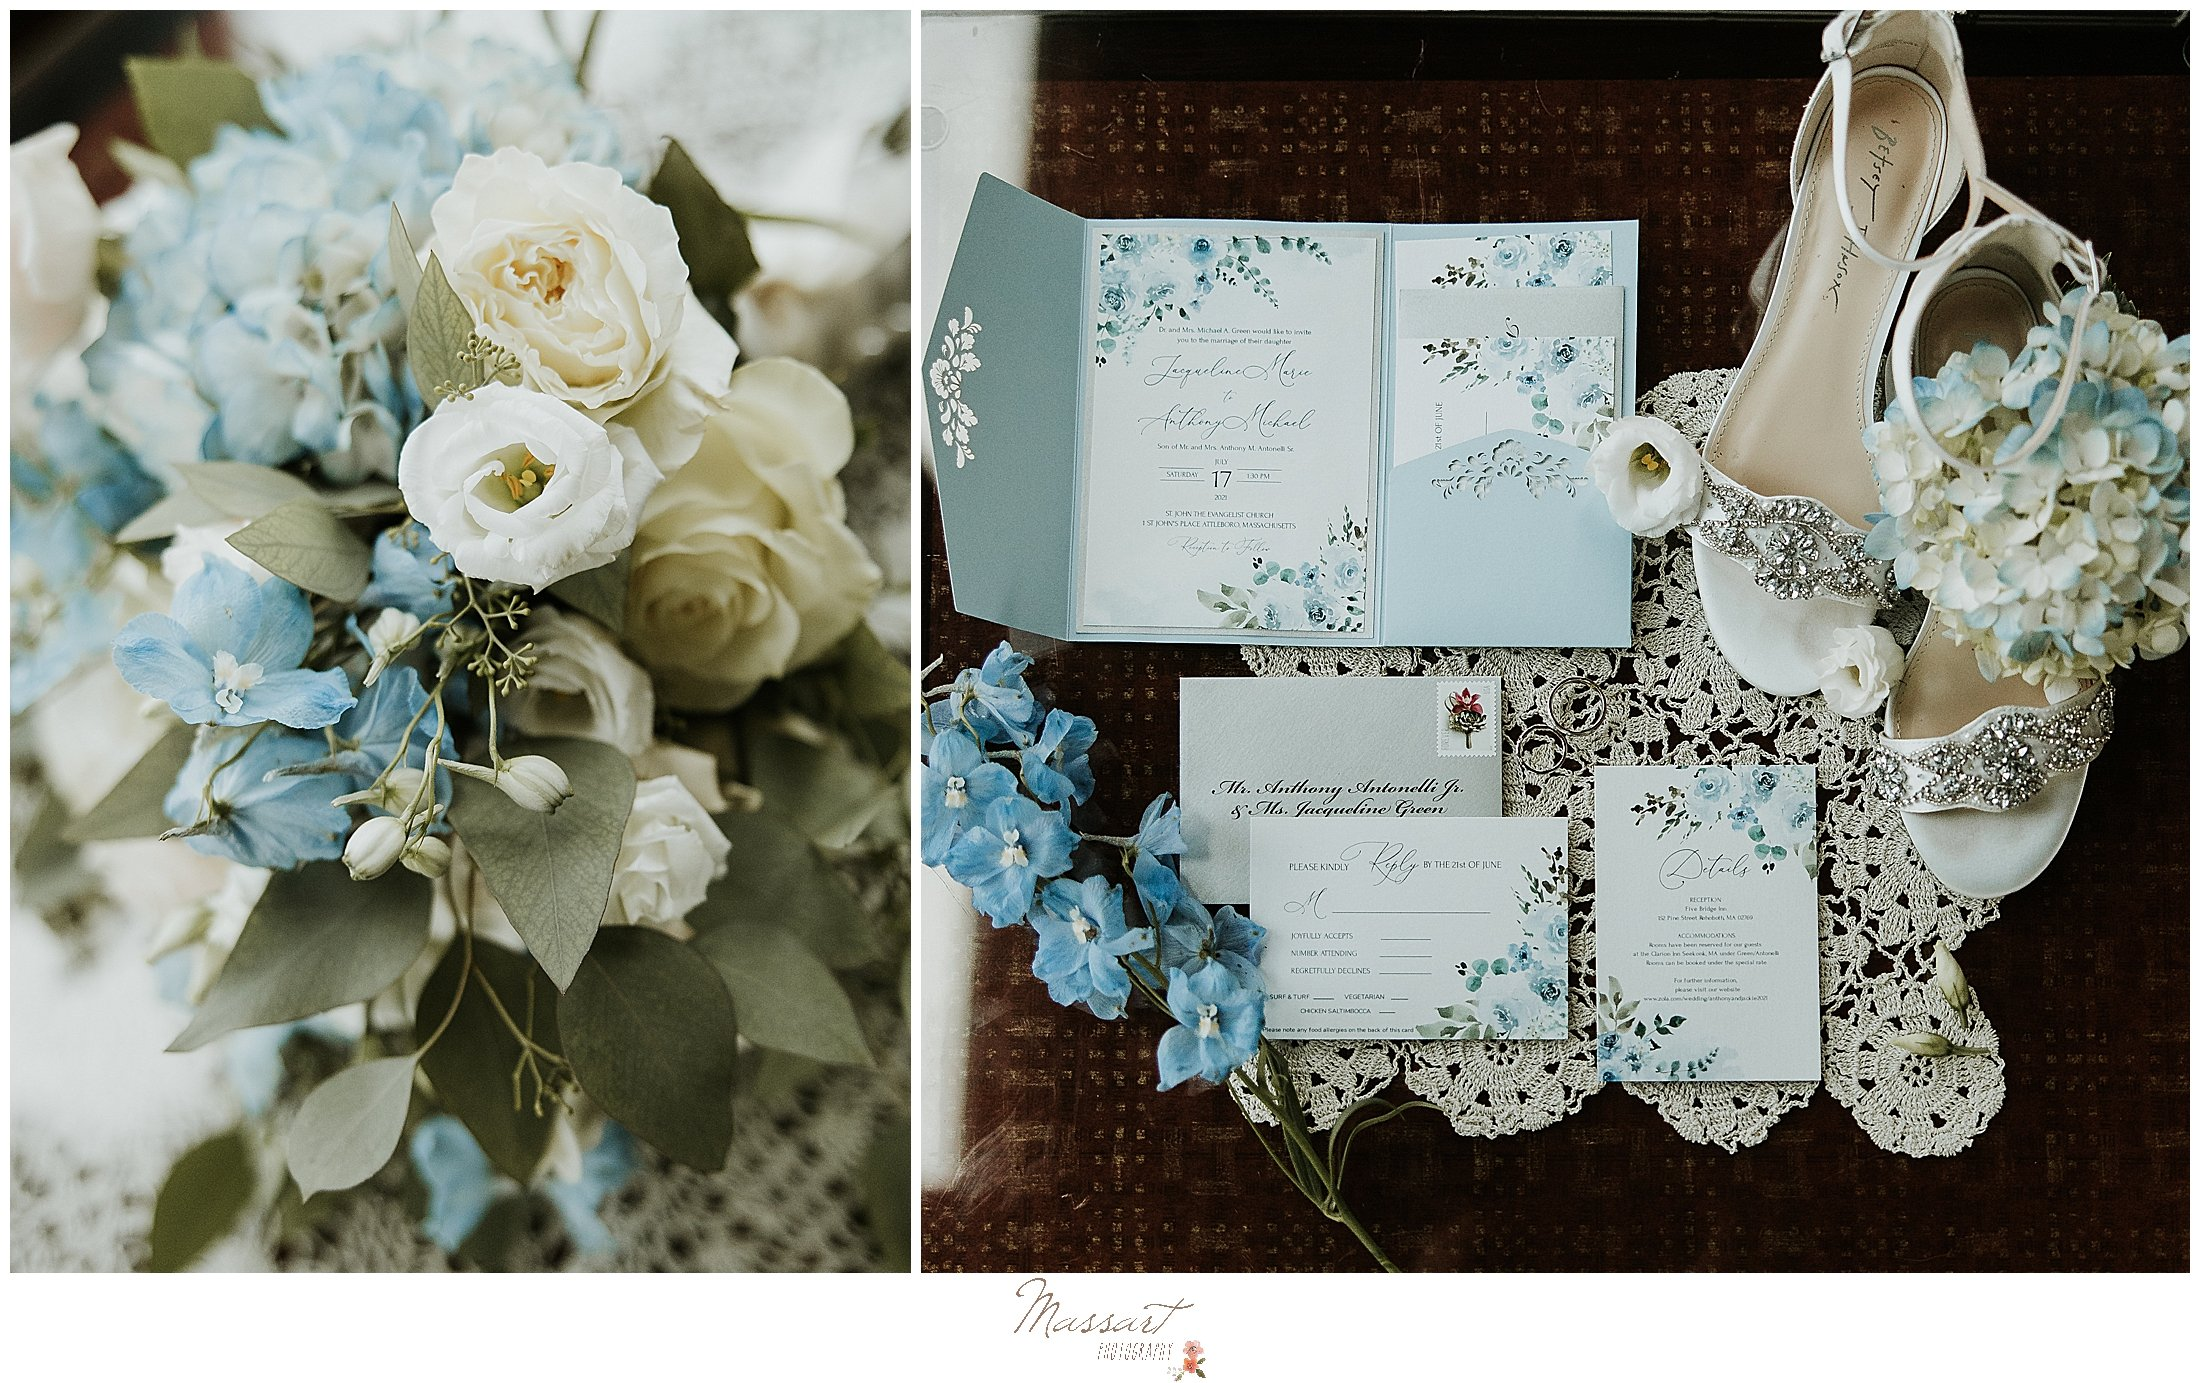 Bride's details are captured by RI newborn and wedding photographers